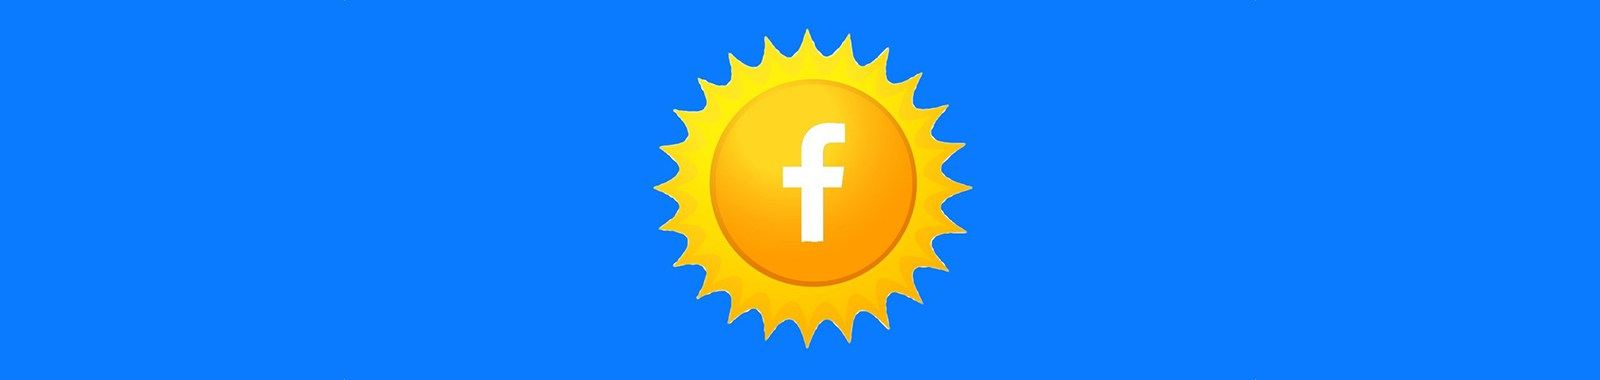 facebook-sunshine-eye